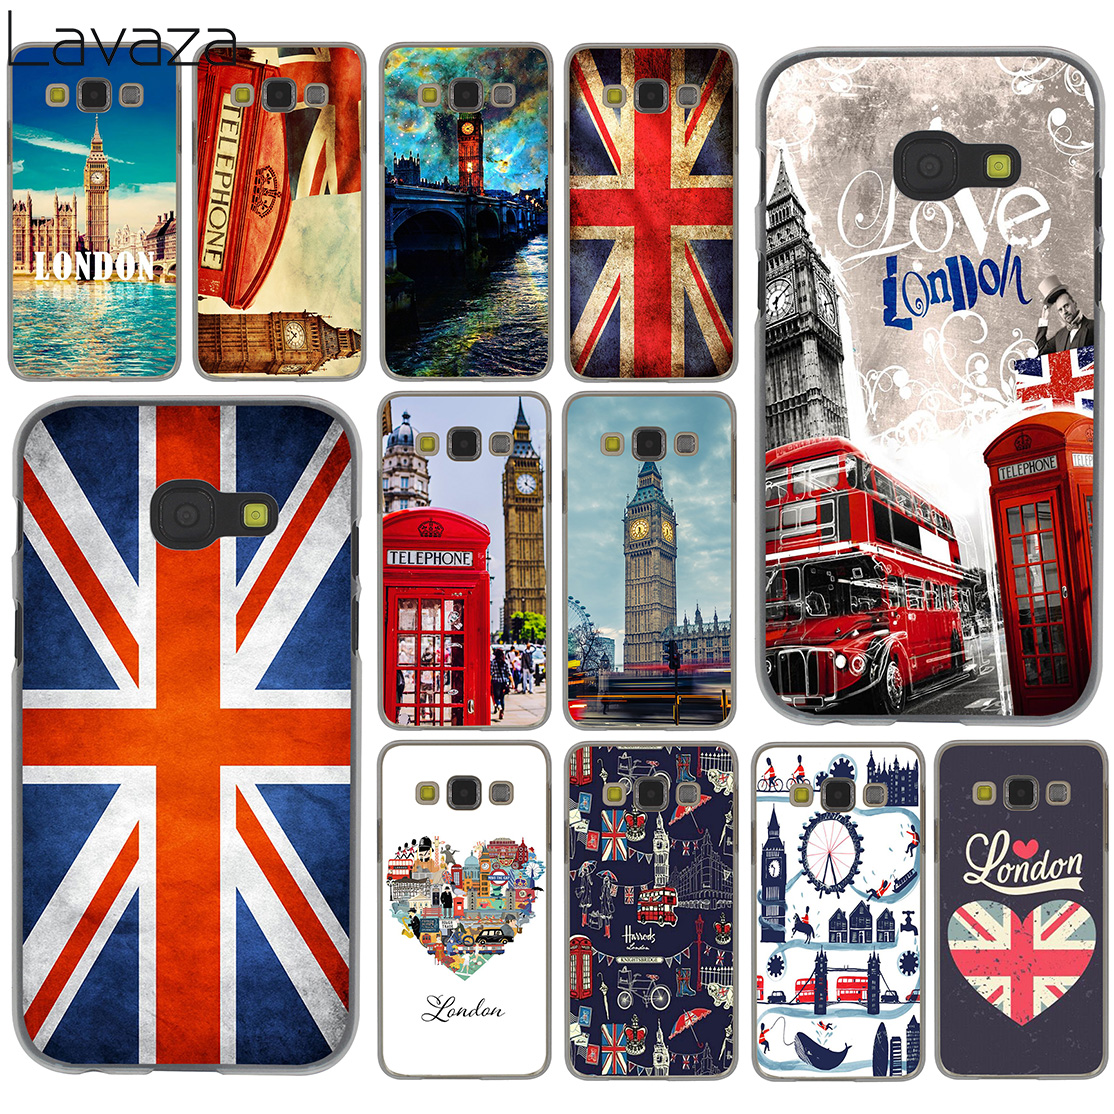 Lavaza Flag Storbritannien London Fodral för Samsung Galaxy Note 10 9 8 A9 A8 A7 A6 Plus 2018 A5 A3 2015 2016 2017 A2 Cover